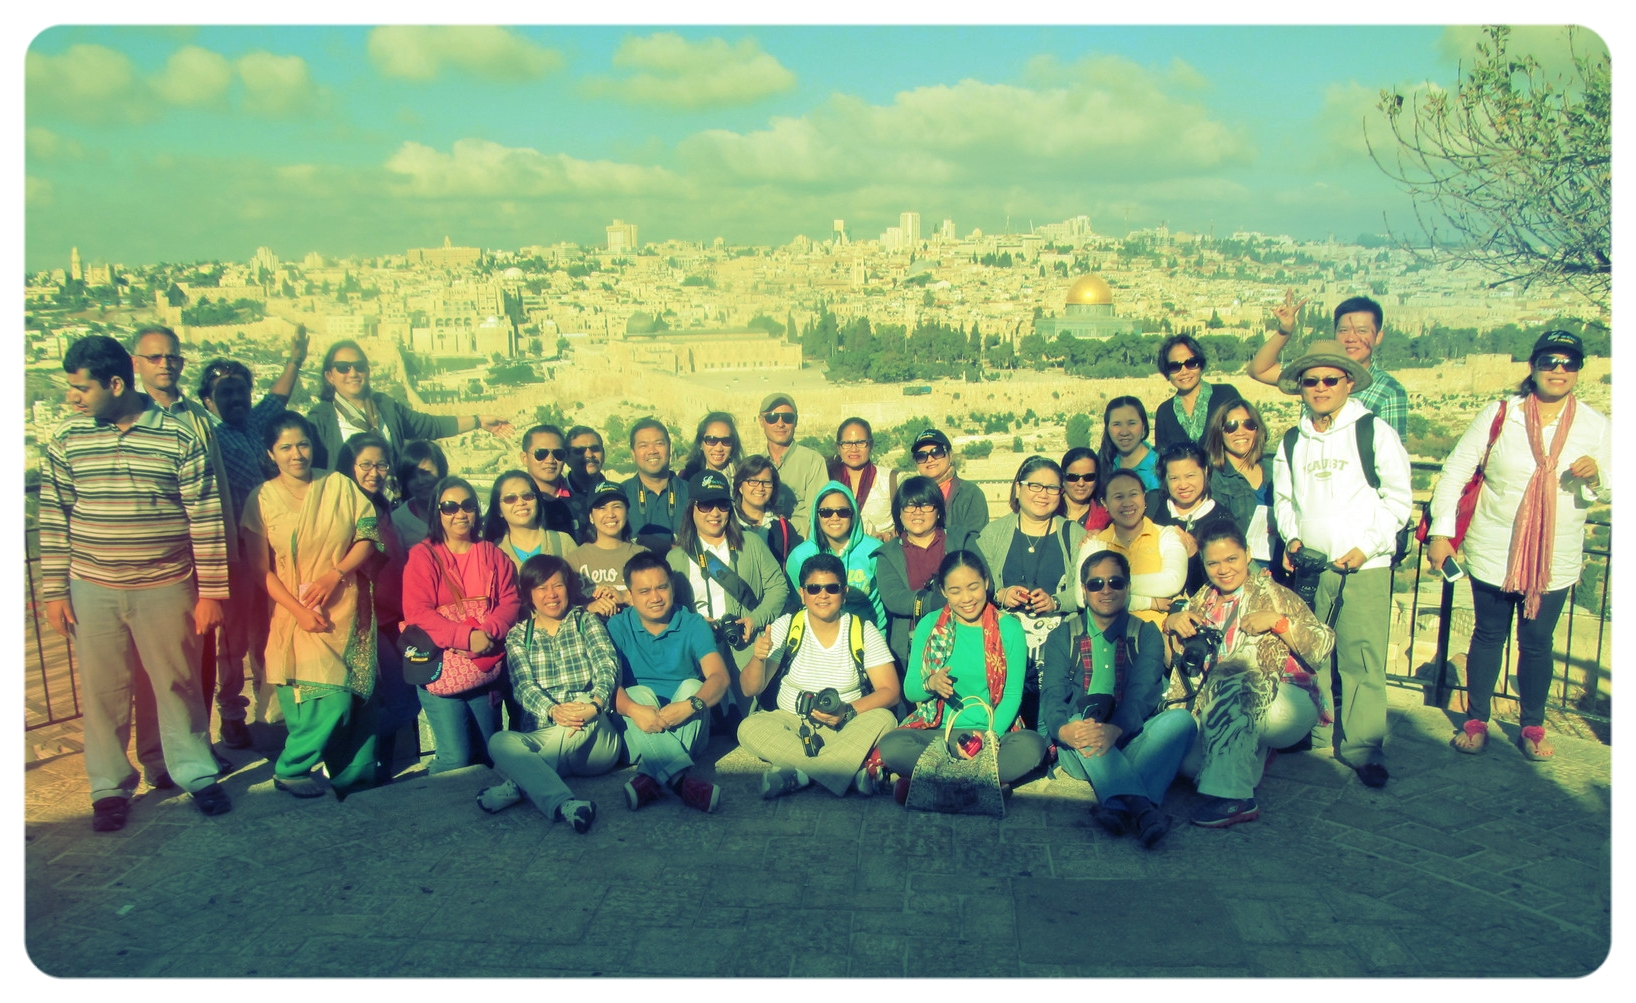 With the Filipino tourists on Mt. of Olives